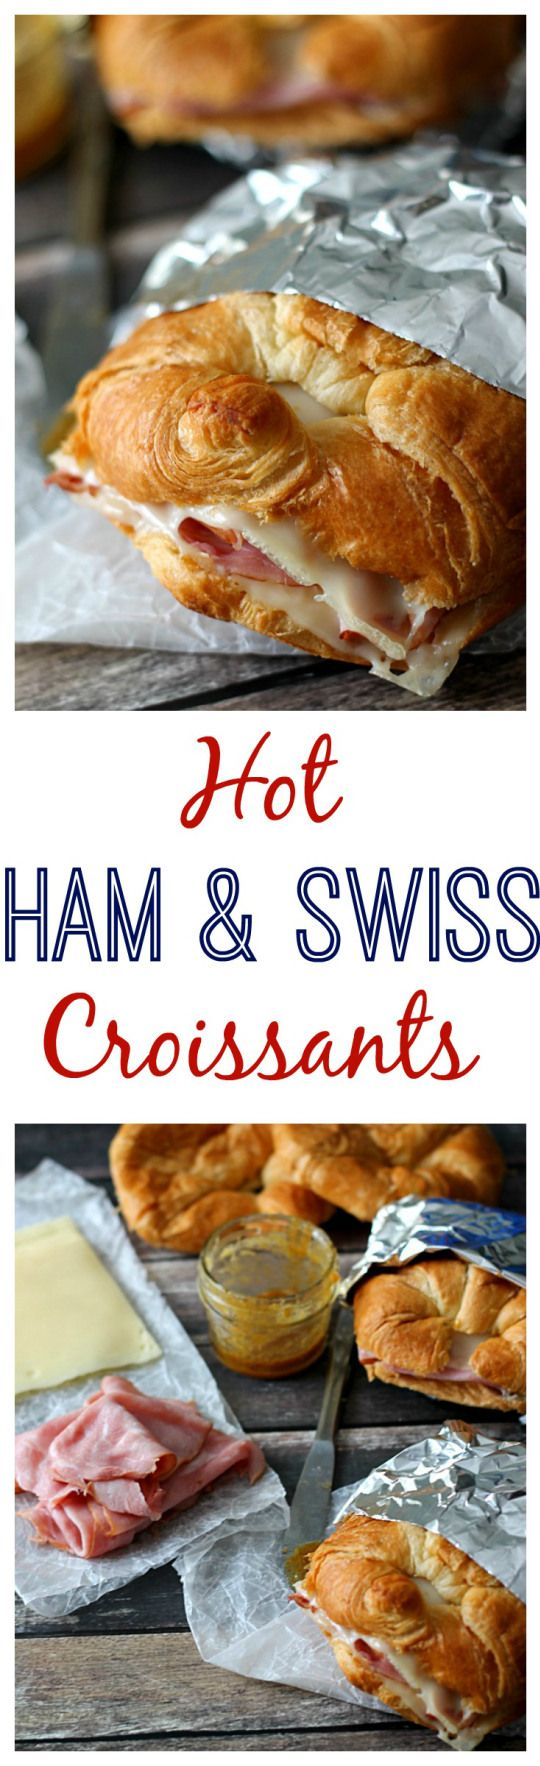 Hot Ham & Swiss Croissants- (!!!!) extremely easy et good. The sauce is really good but slightly too sweet. (Which I preferred ). Definite keeper